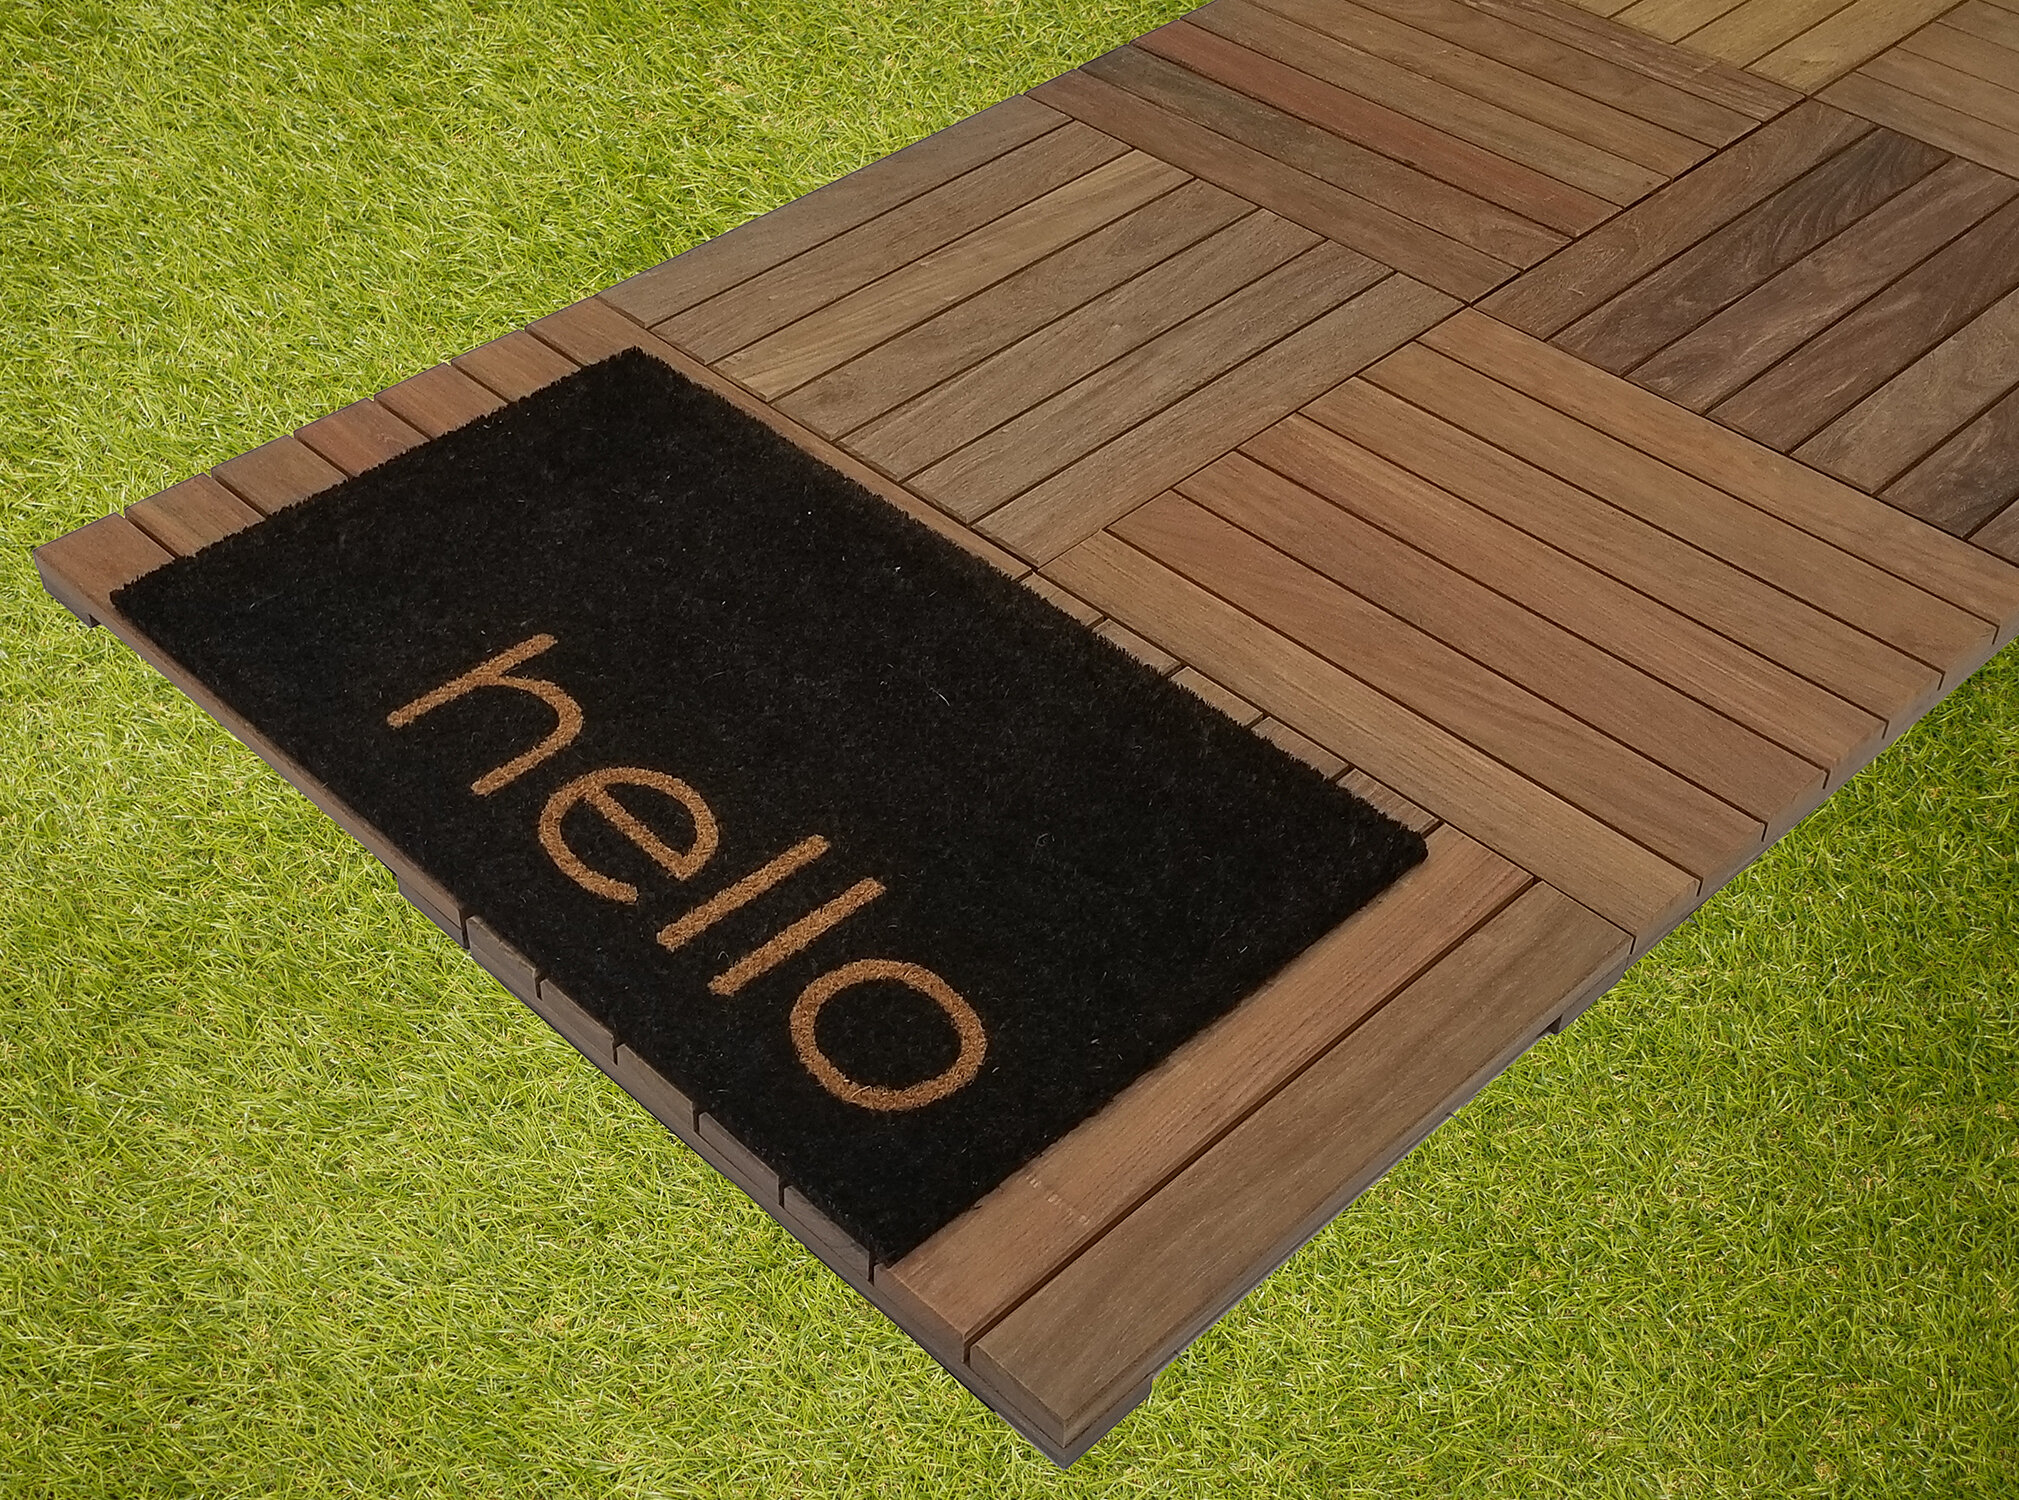 Where to Install Deck Tiles - Deck tiles can be easily installed over most flat surfaces or substructures. Lay deck tiles over exiting wood or brick deck, cover a concrete rooftop balcony, or place on top of gravel and grass.